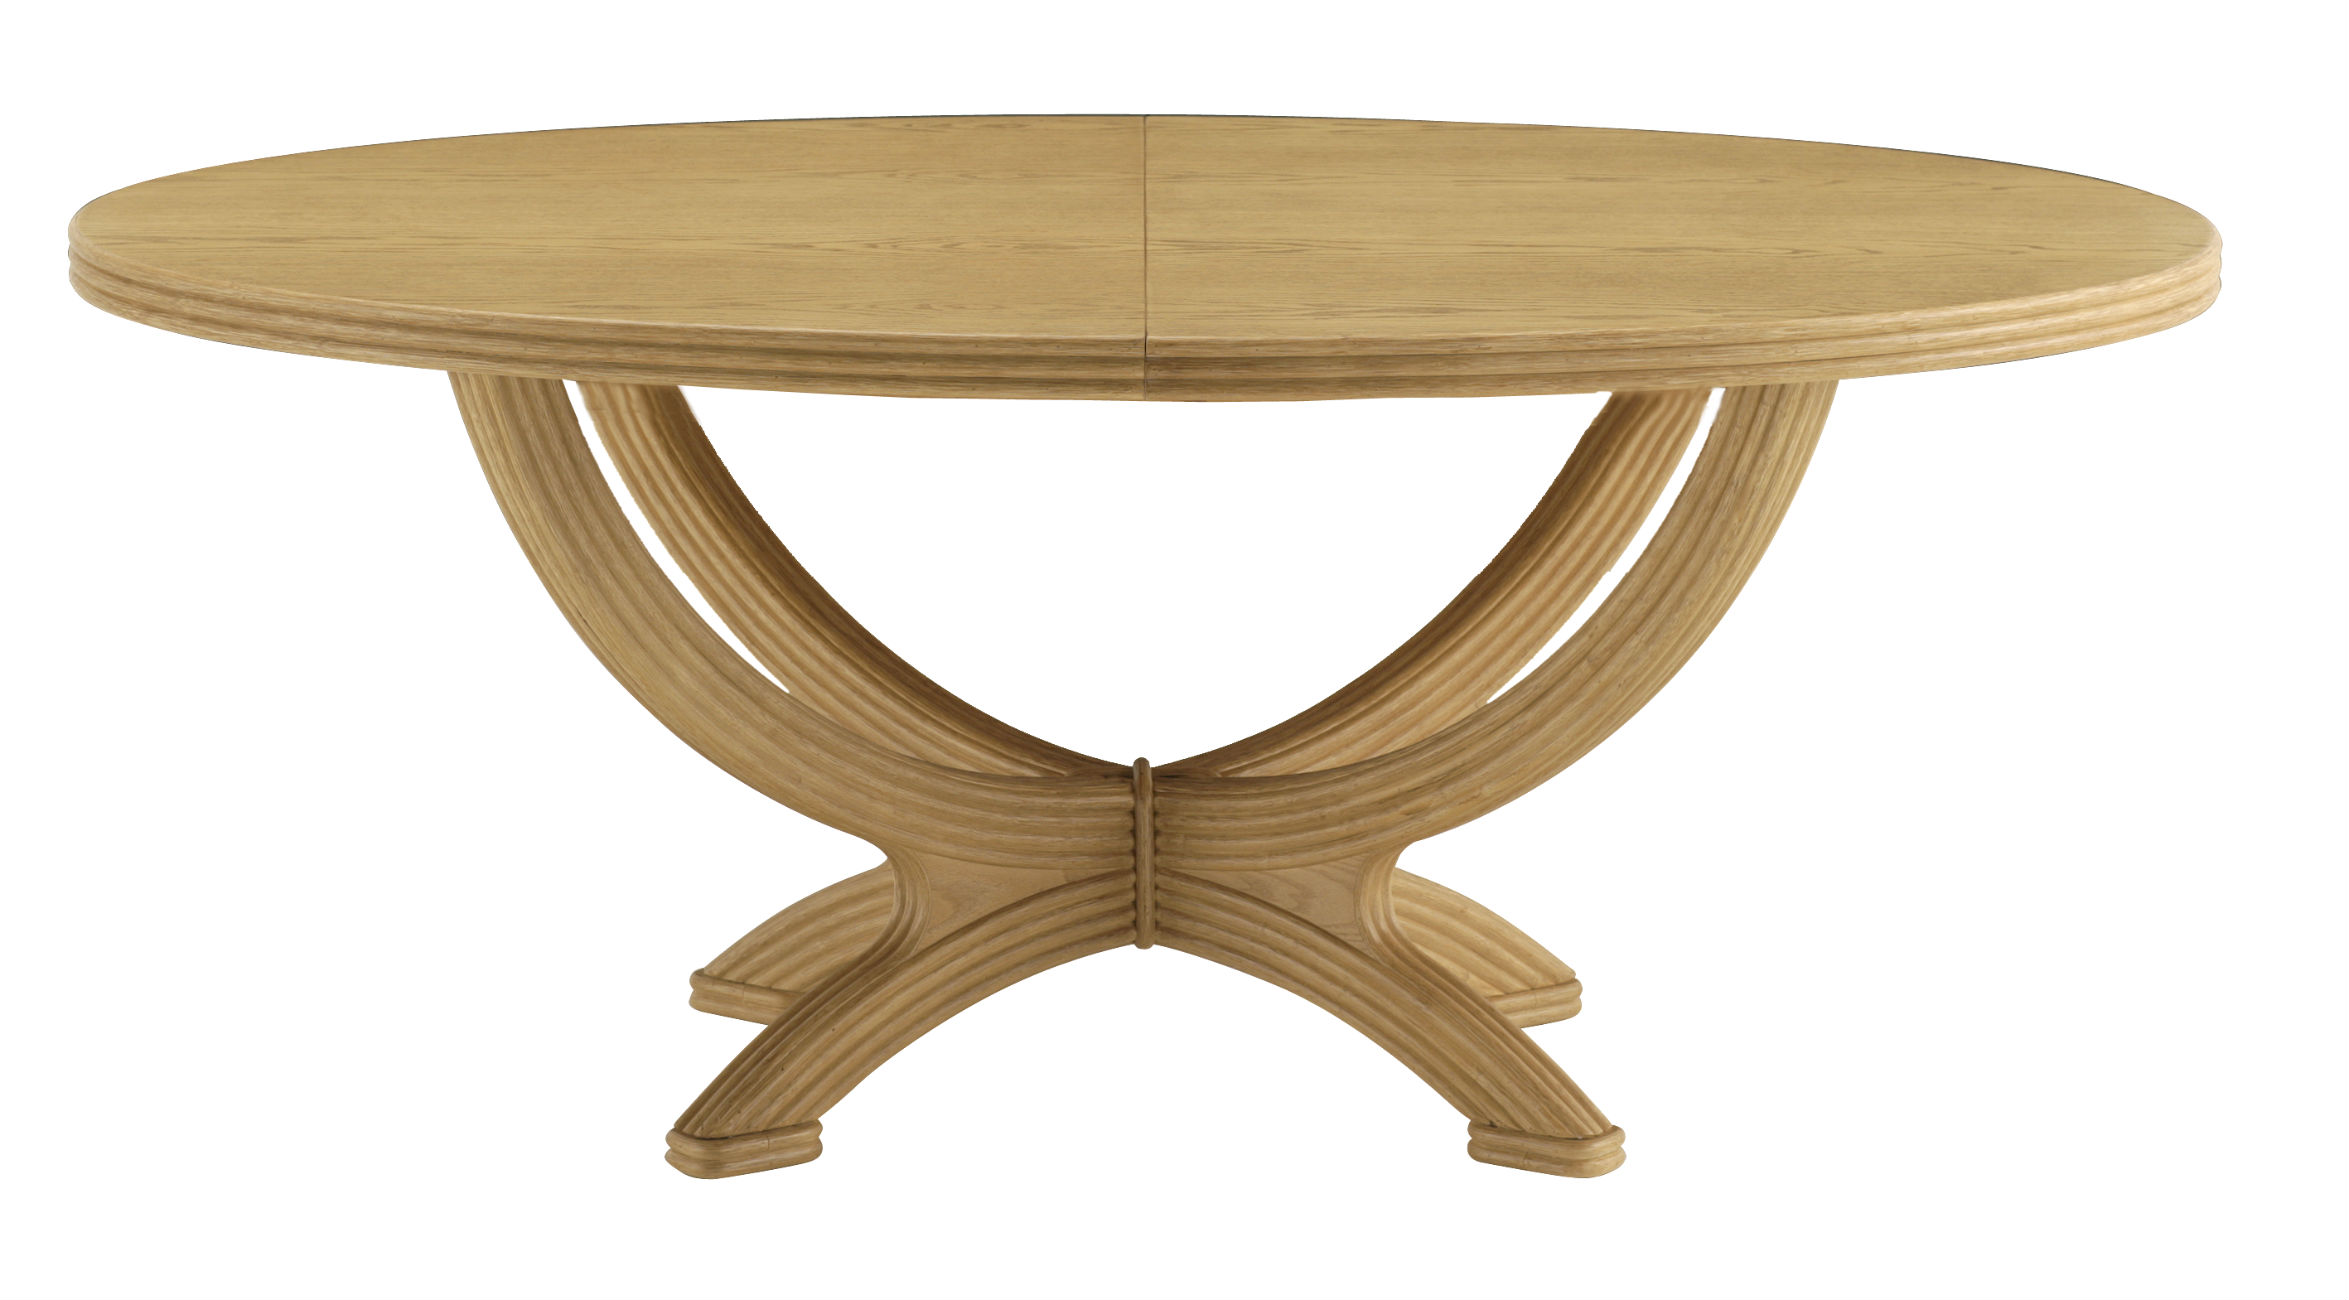 Table à Rallonge Design Table Ovale Avec Rallonge Brin D 39ouest